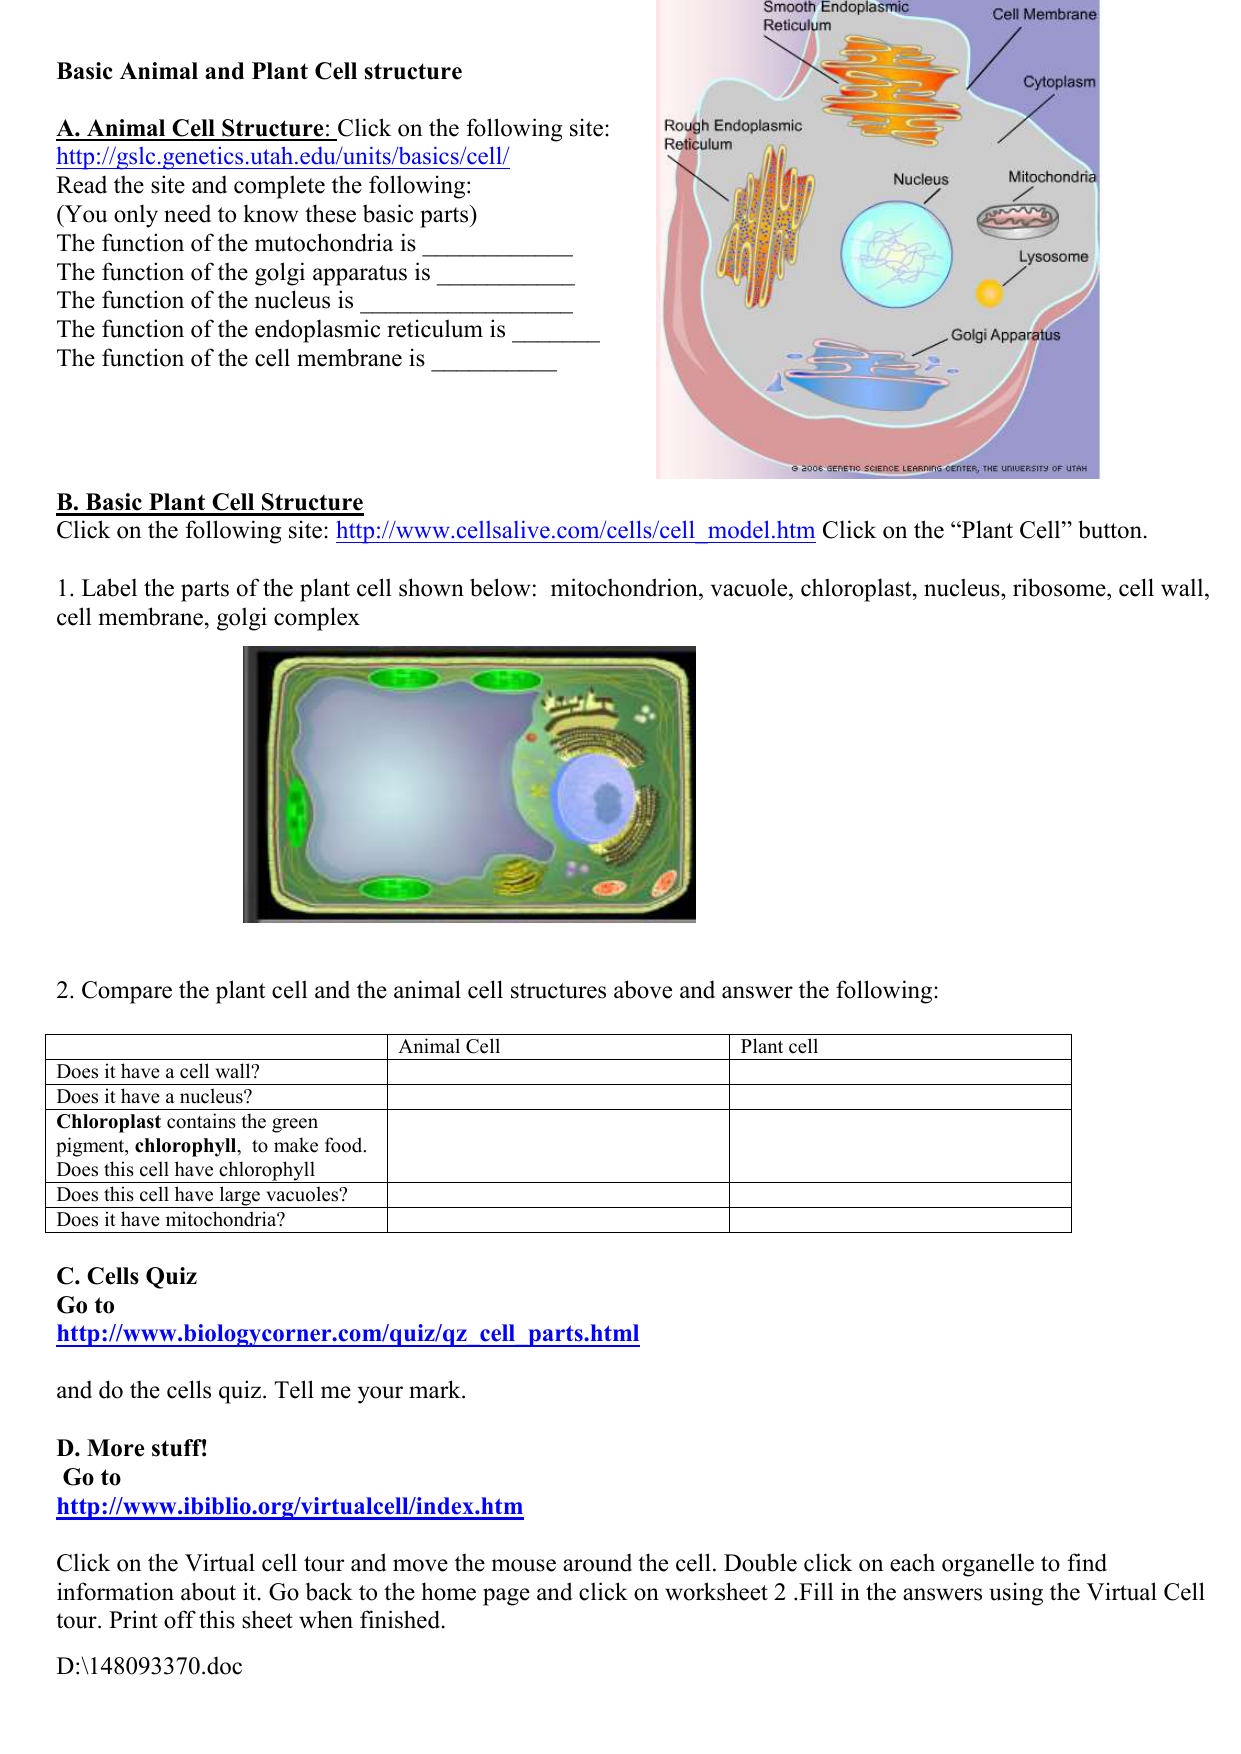 worksheet Cells Alive Worksheet Answers plant cell anatomy functions gallery human learning 0097650901 54aff5ae4b8dcf247f0ba33e551fbc4ag muvagfo gallery